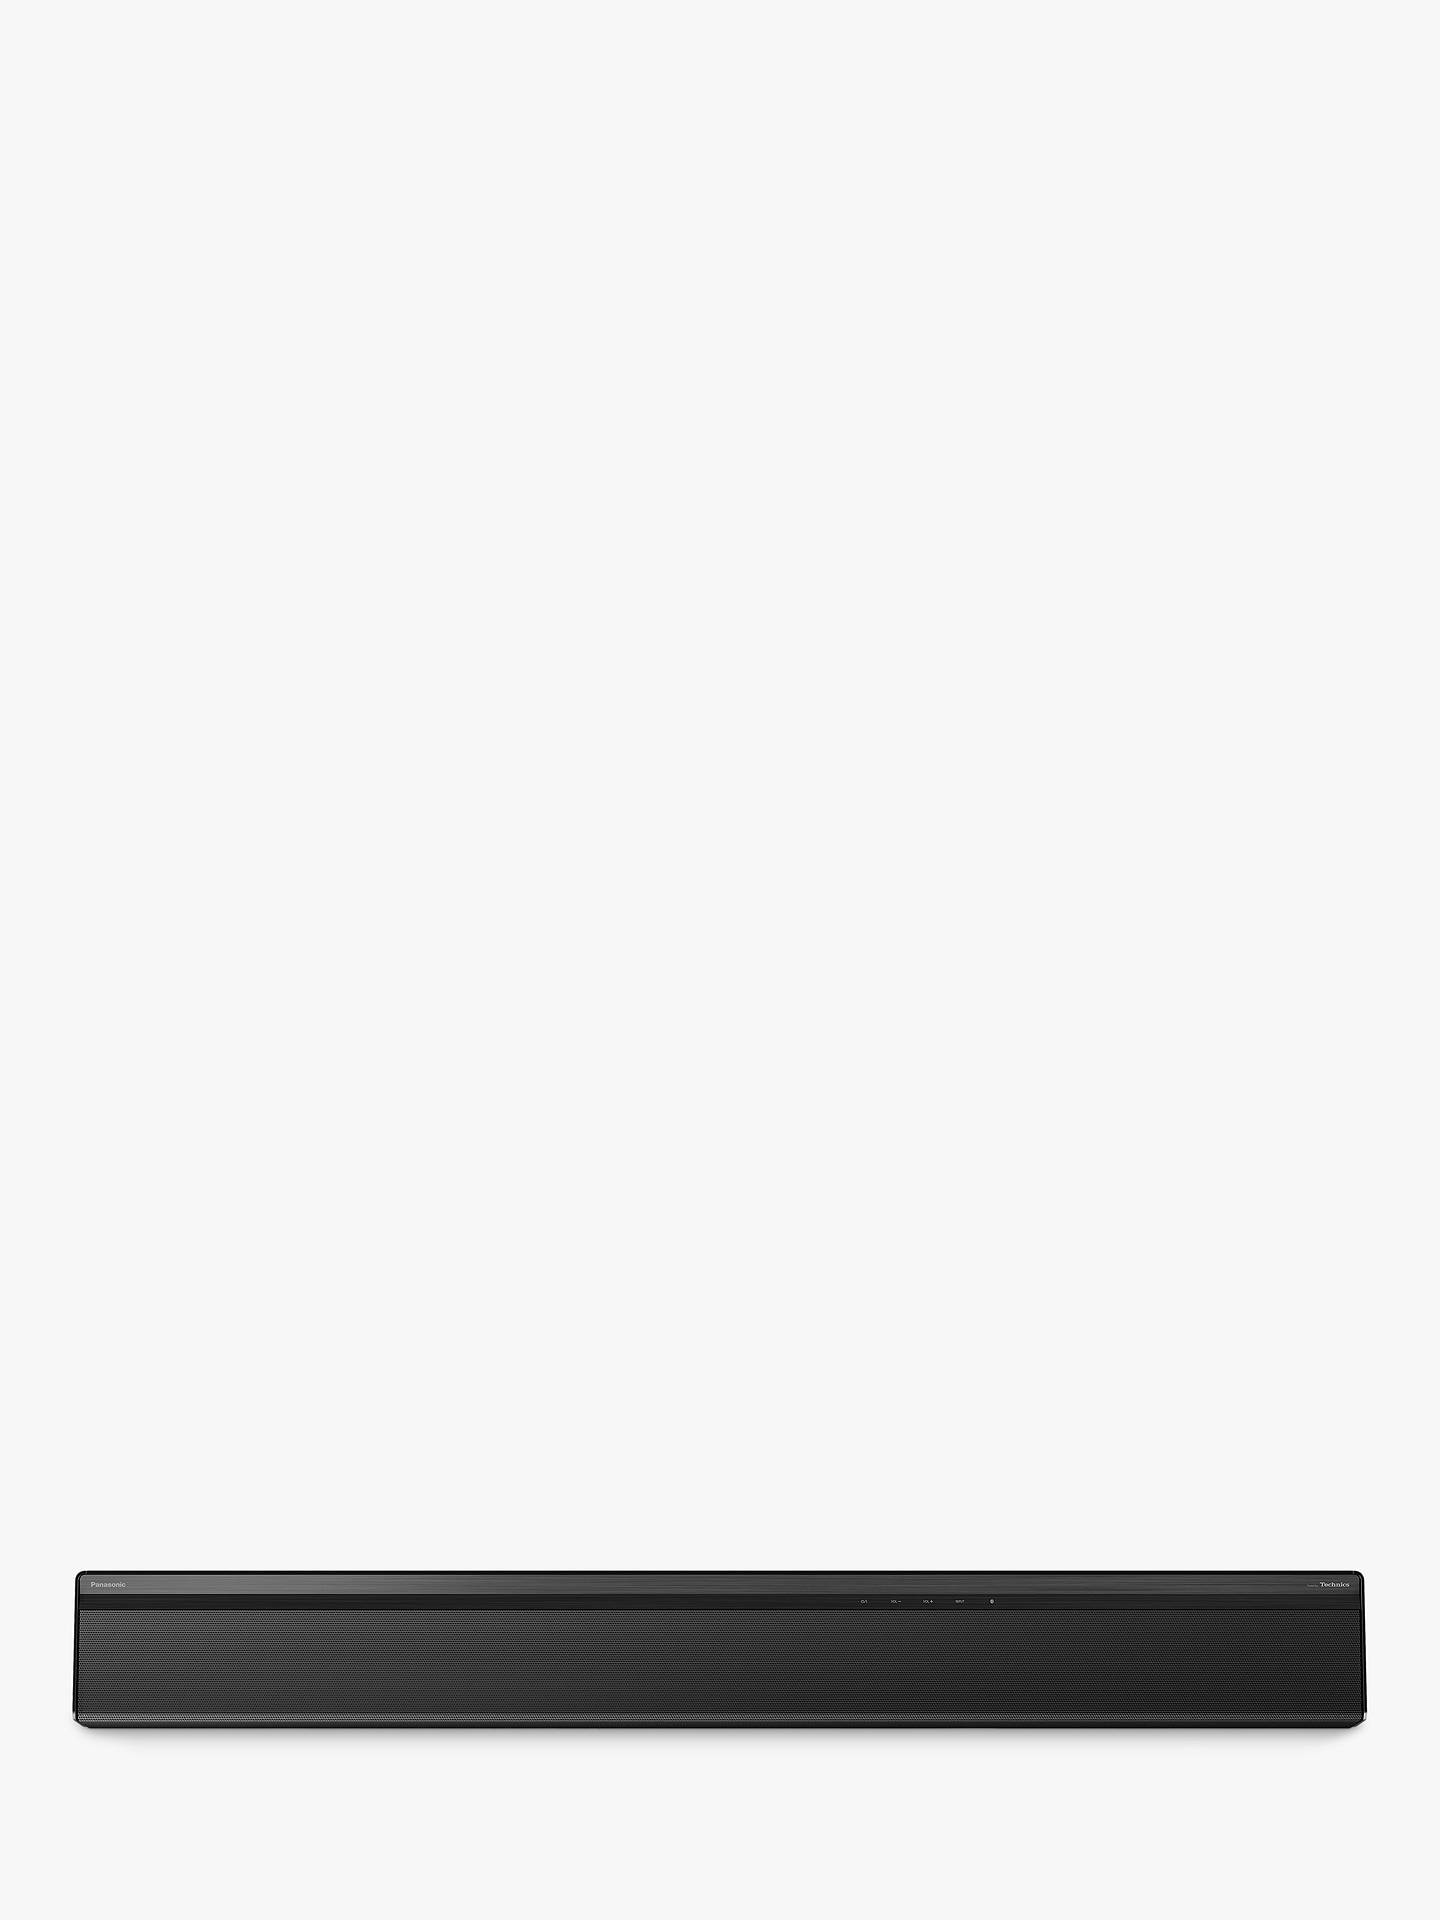 Panasonic SC-HTB900 Bluetooth Wi-Fi Sound Bar with Dolby Atmos / DTS:X,  Chromecast Built-In & Wireless Subwoofer